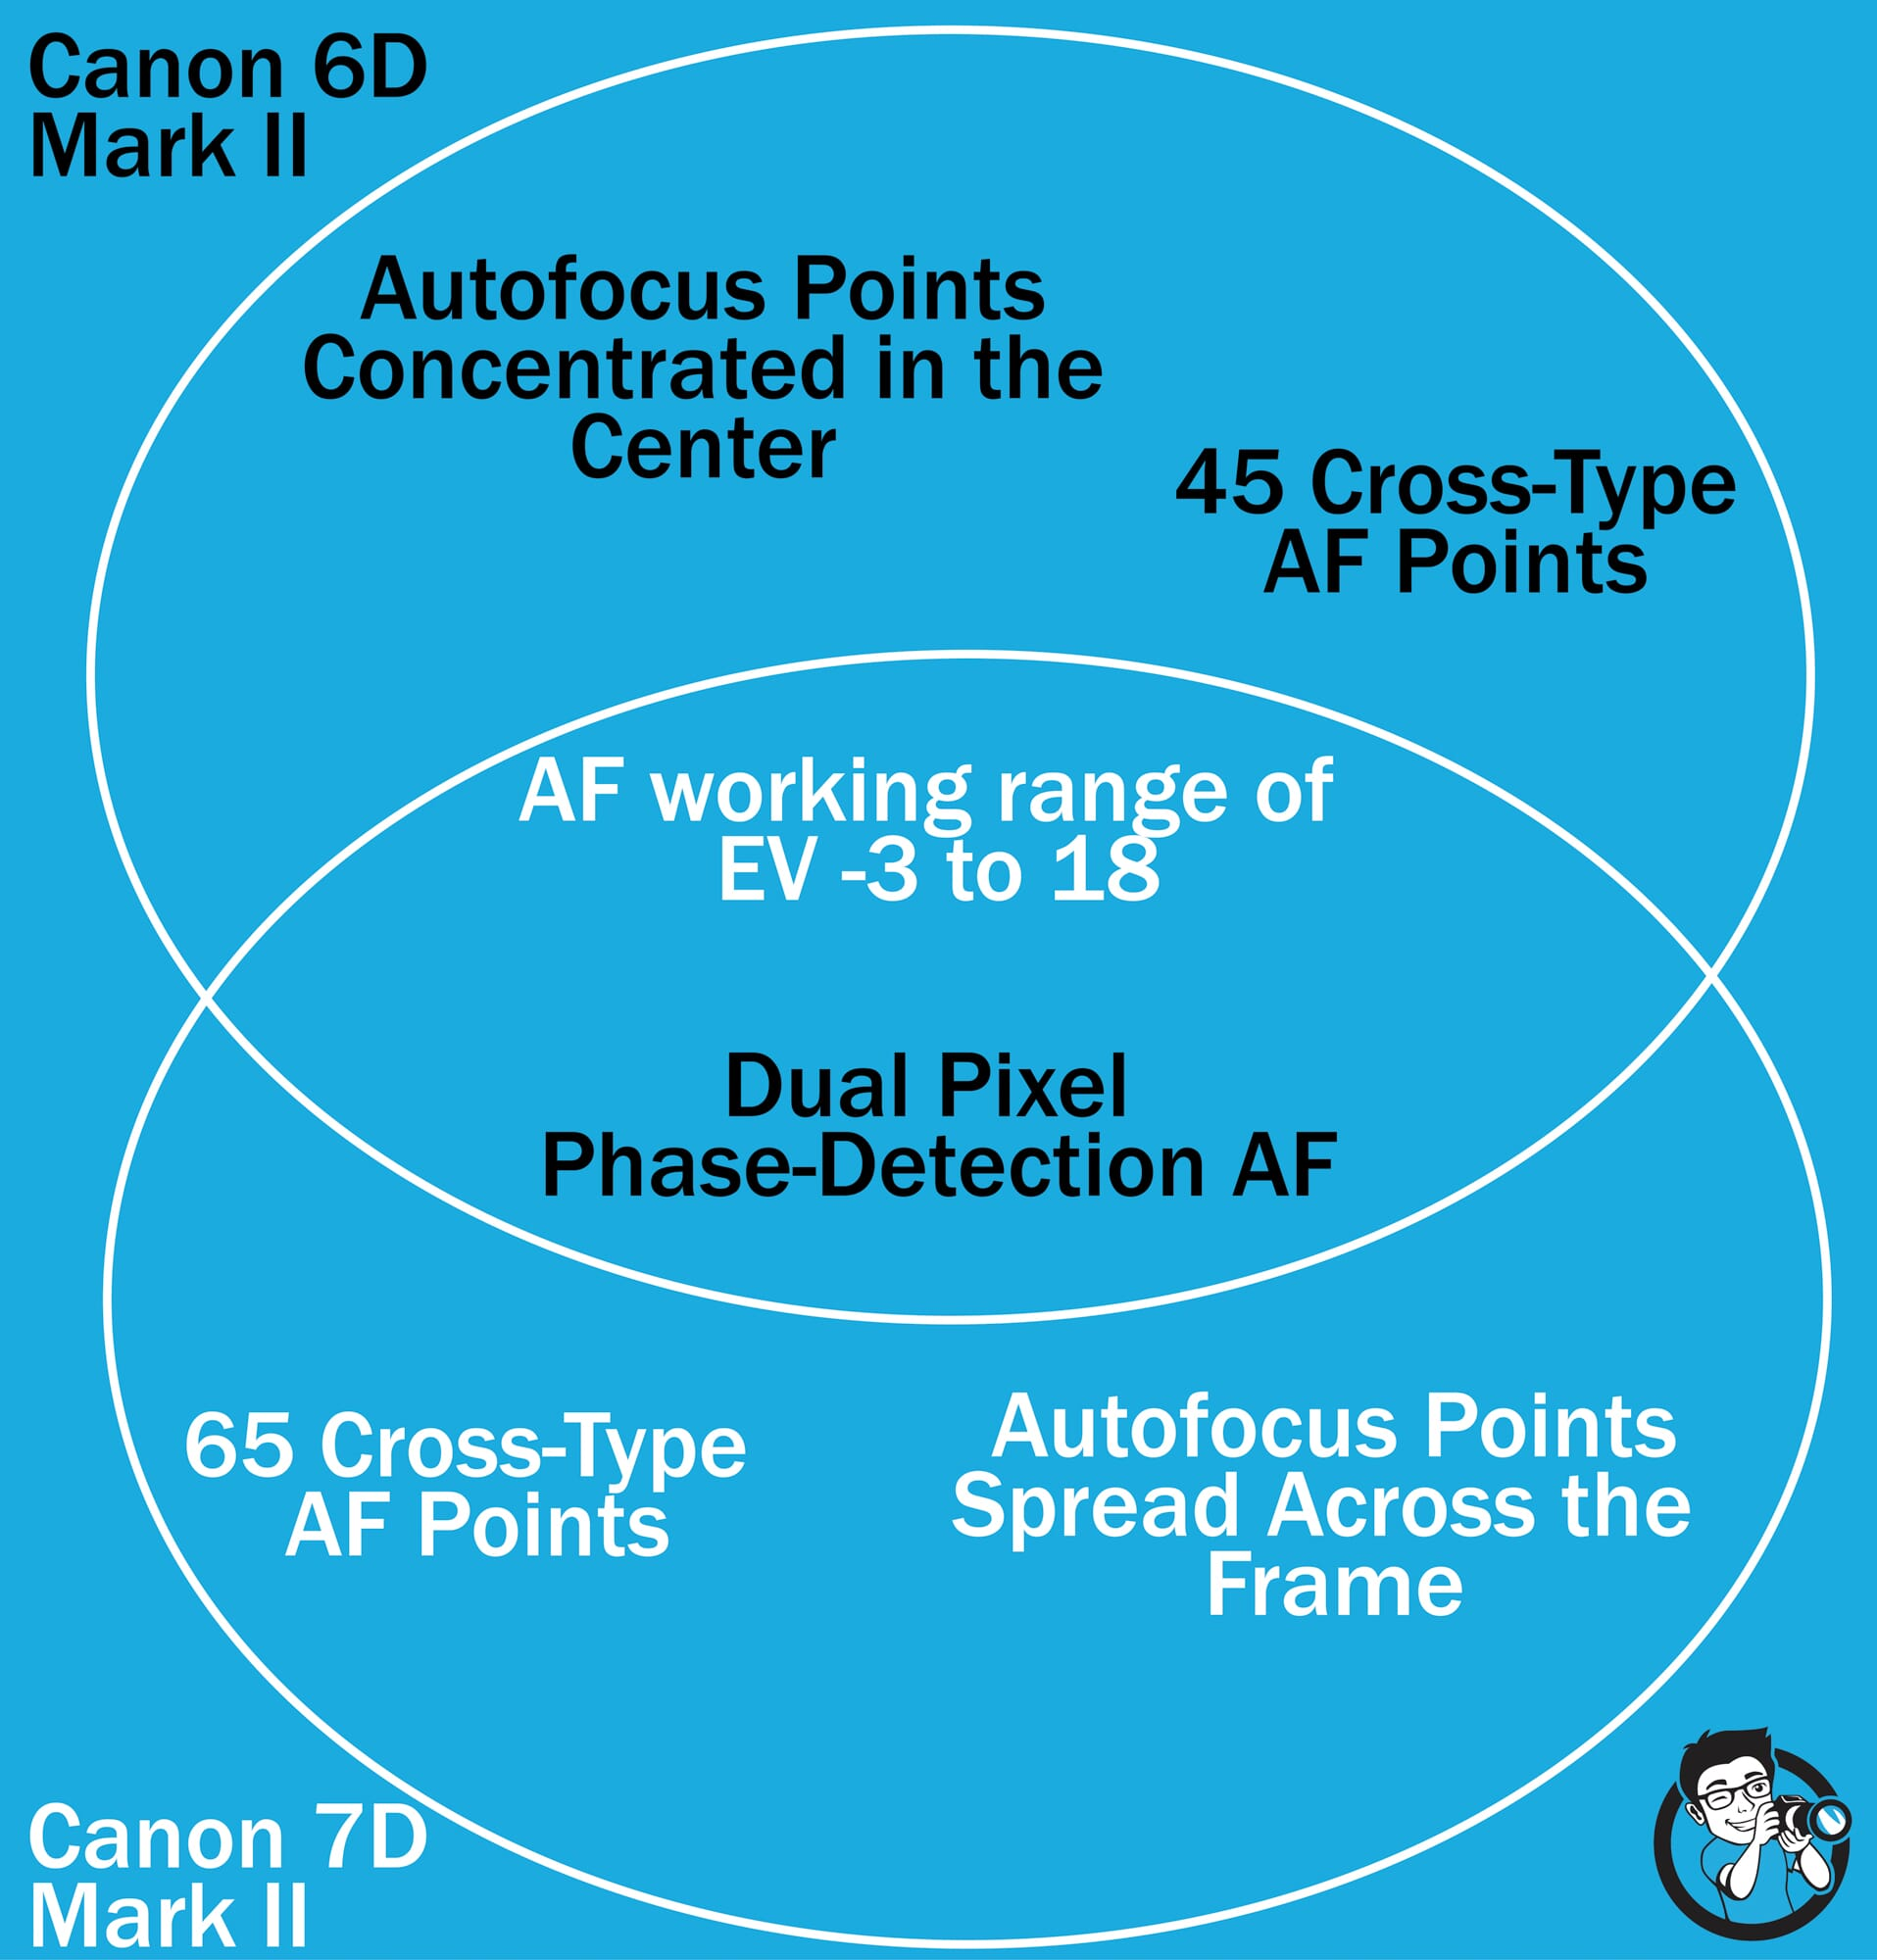 Venn of features Canon 6D vs 7D